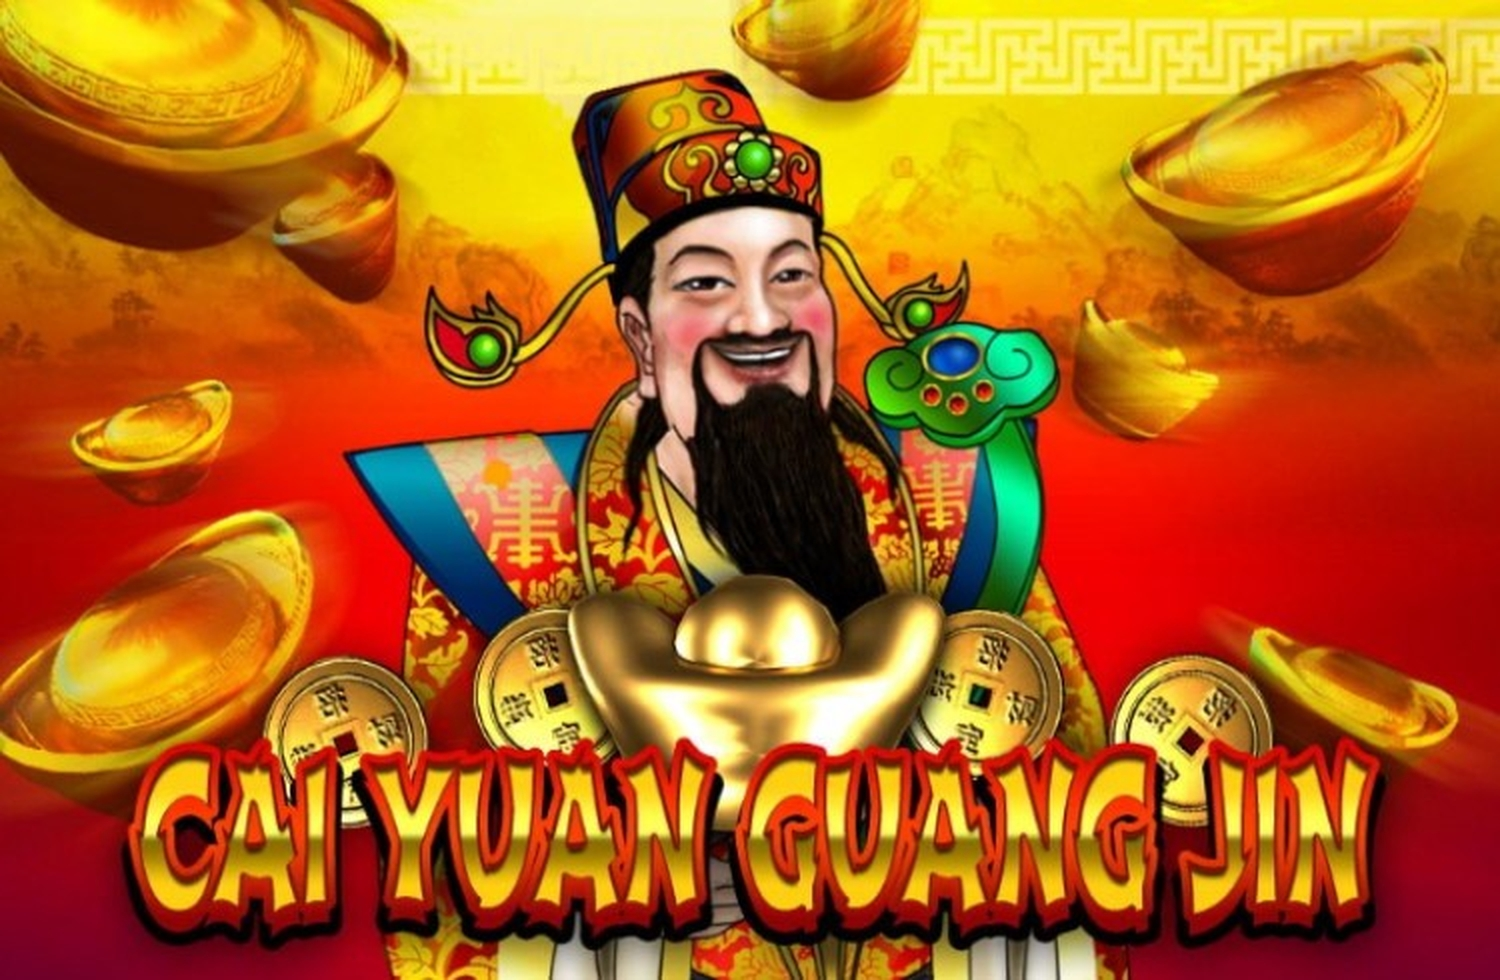 Se Cai Yuan Guang Jin (Spadegaming) Online Slot Demo Game, Spade Gaming